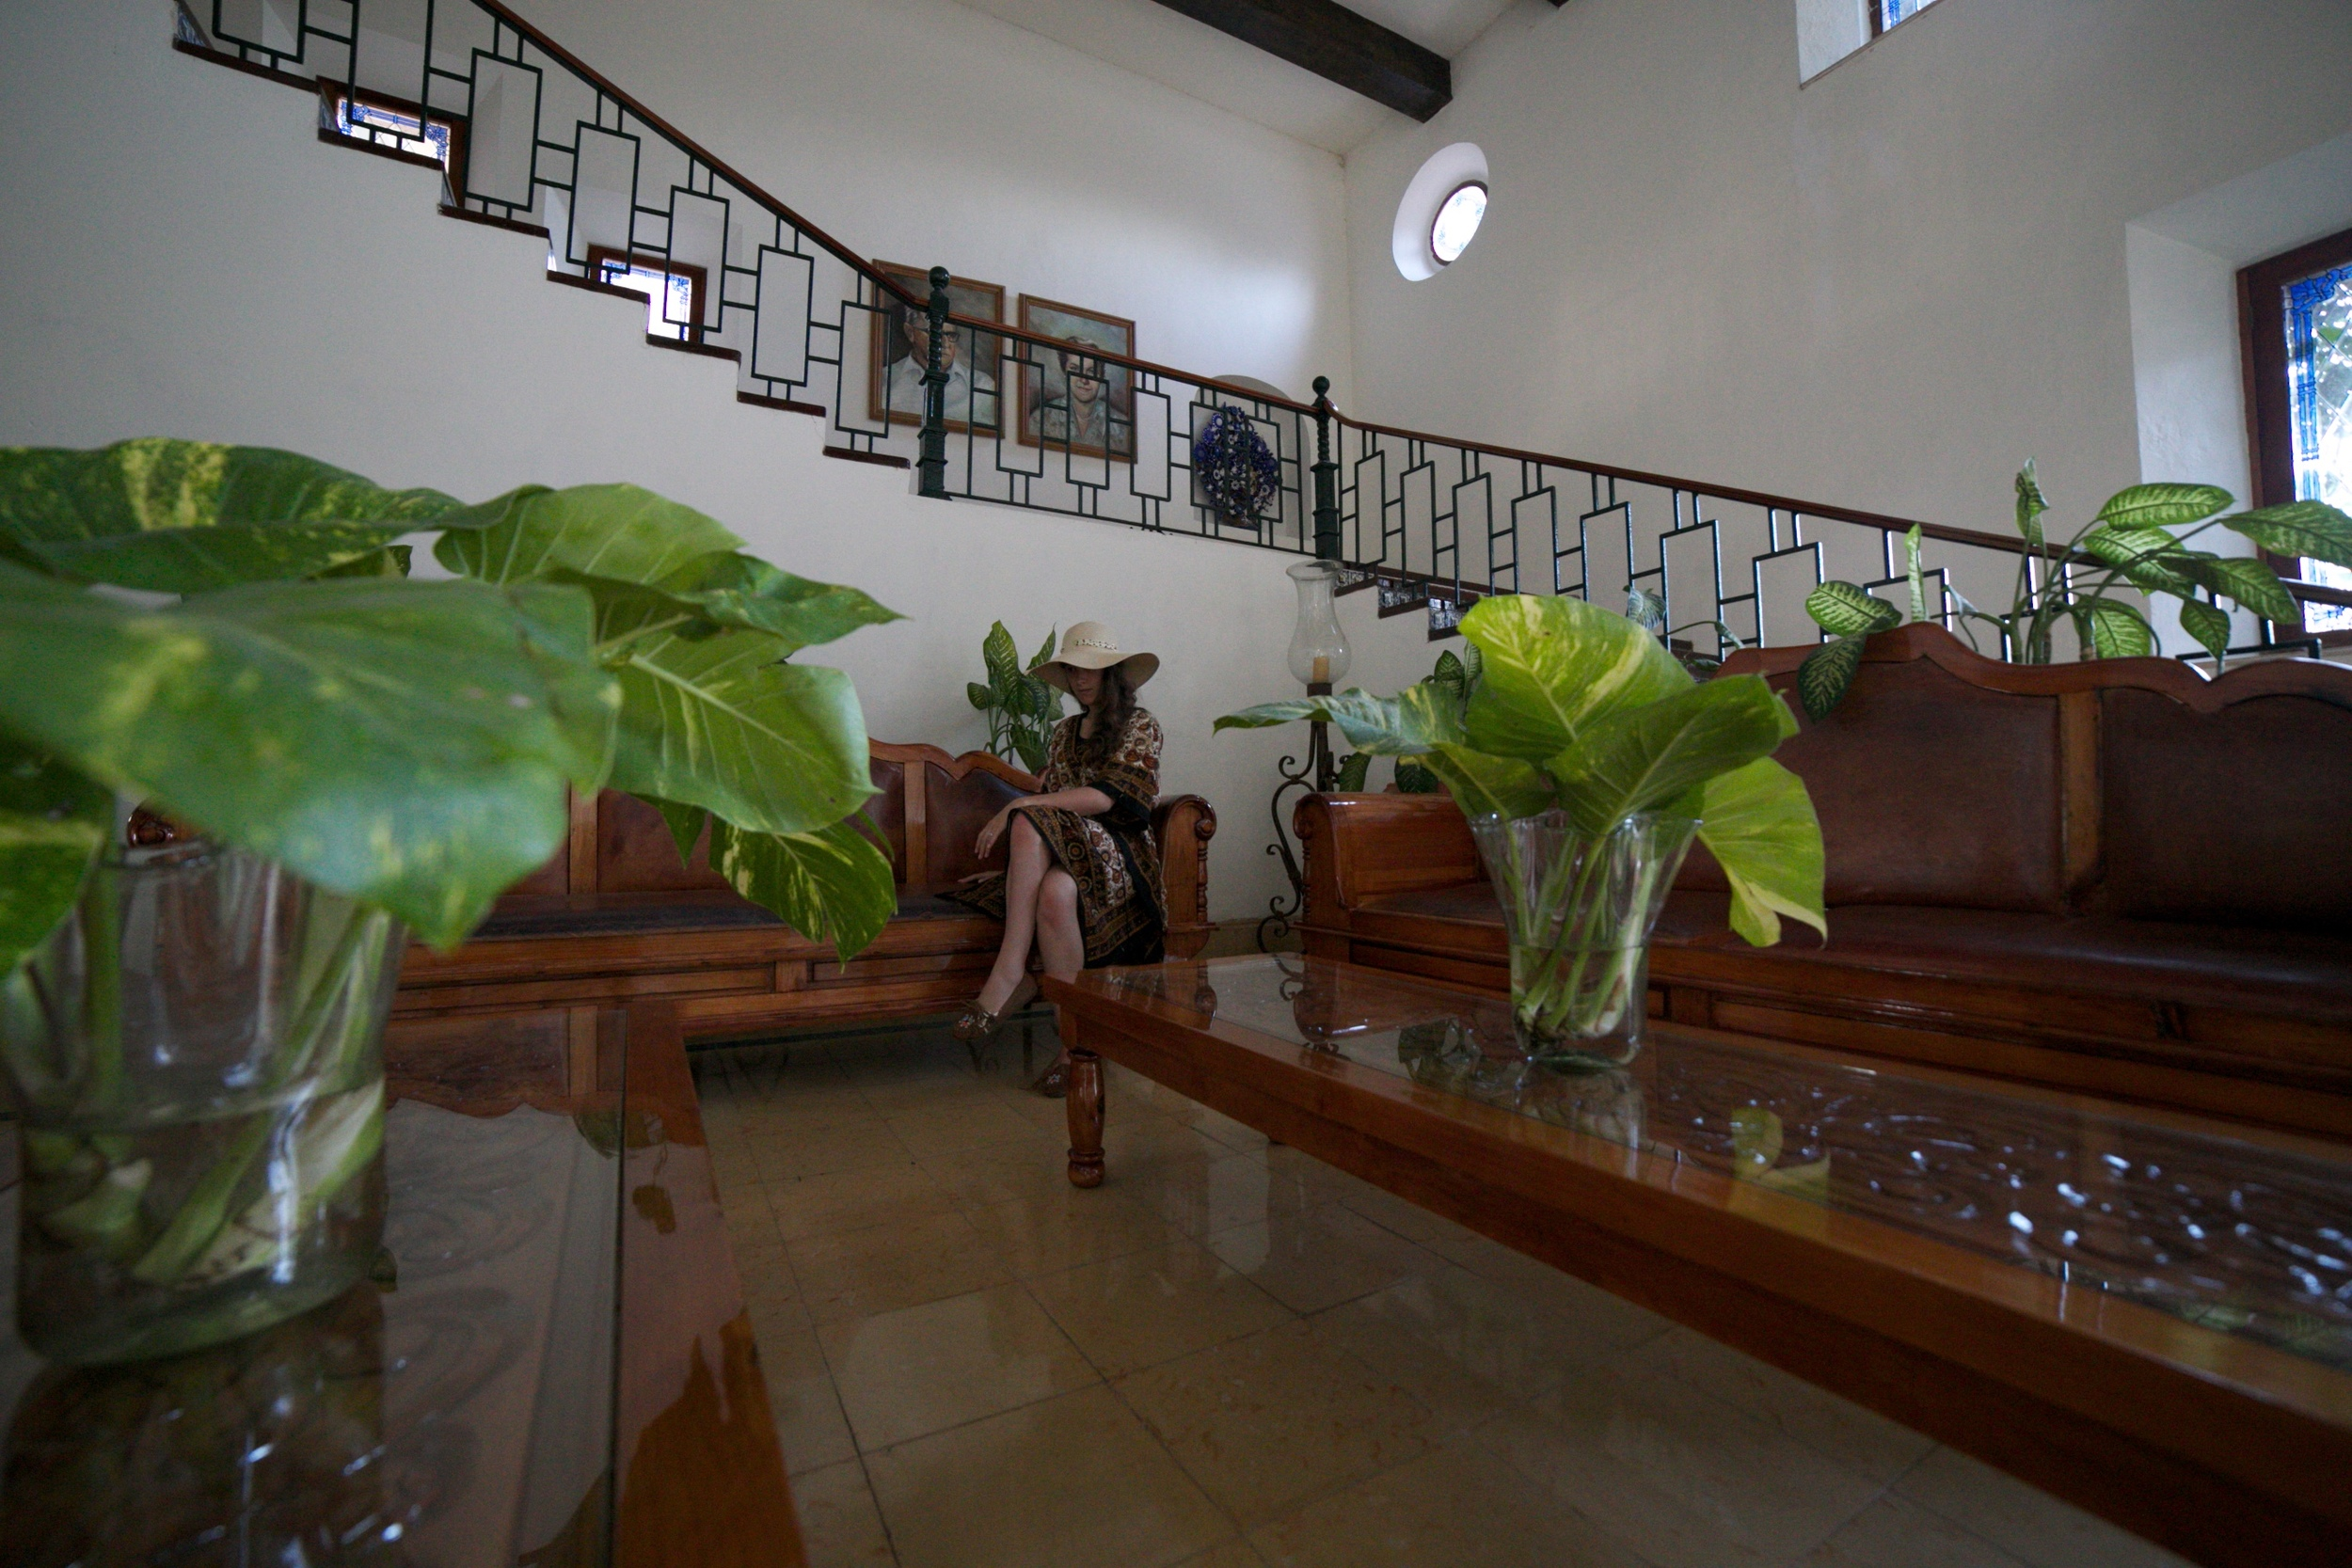 Sitting in an old world style lobby at a hotel in Mexico - surrounded by potted plants.